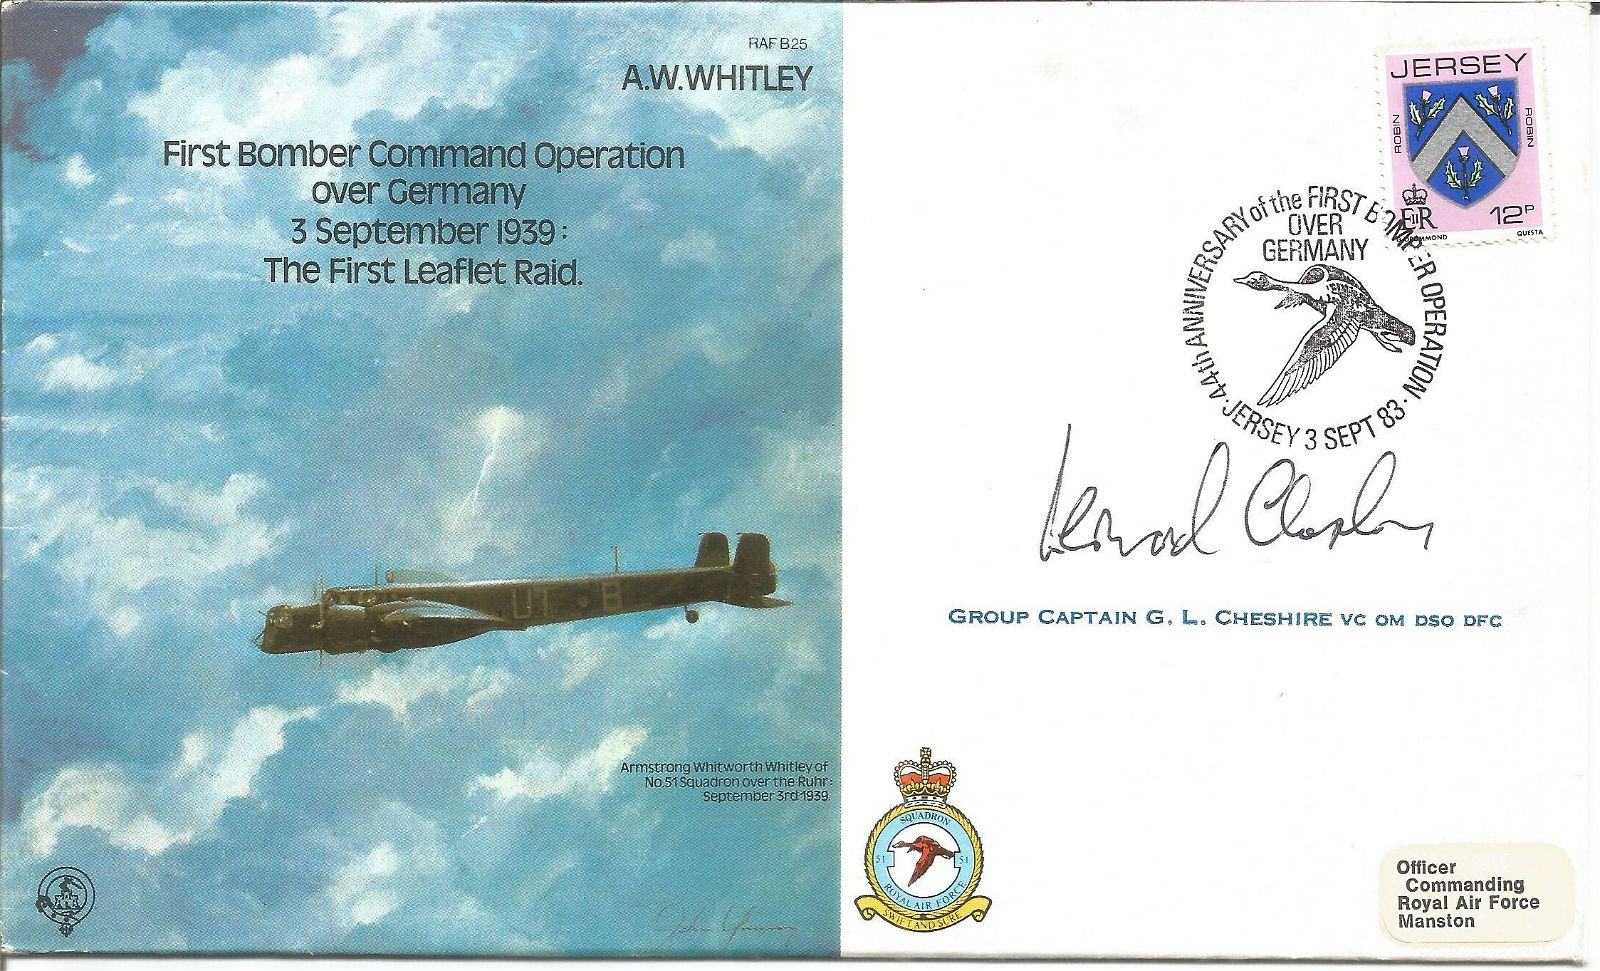 WW2 RAF 617 The Dam Busters Squadron, Leonard Cheshire